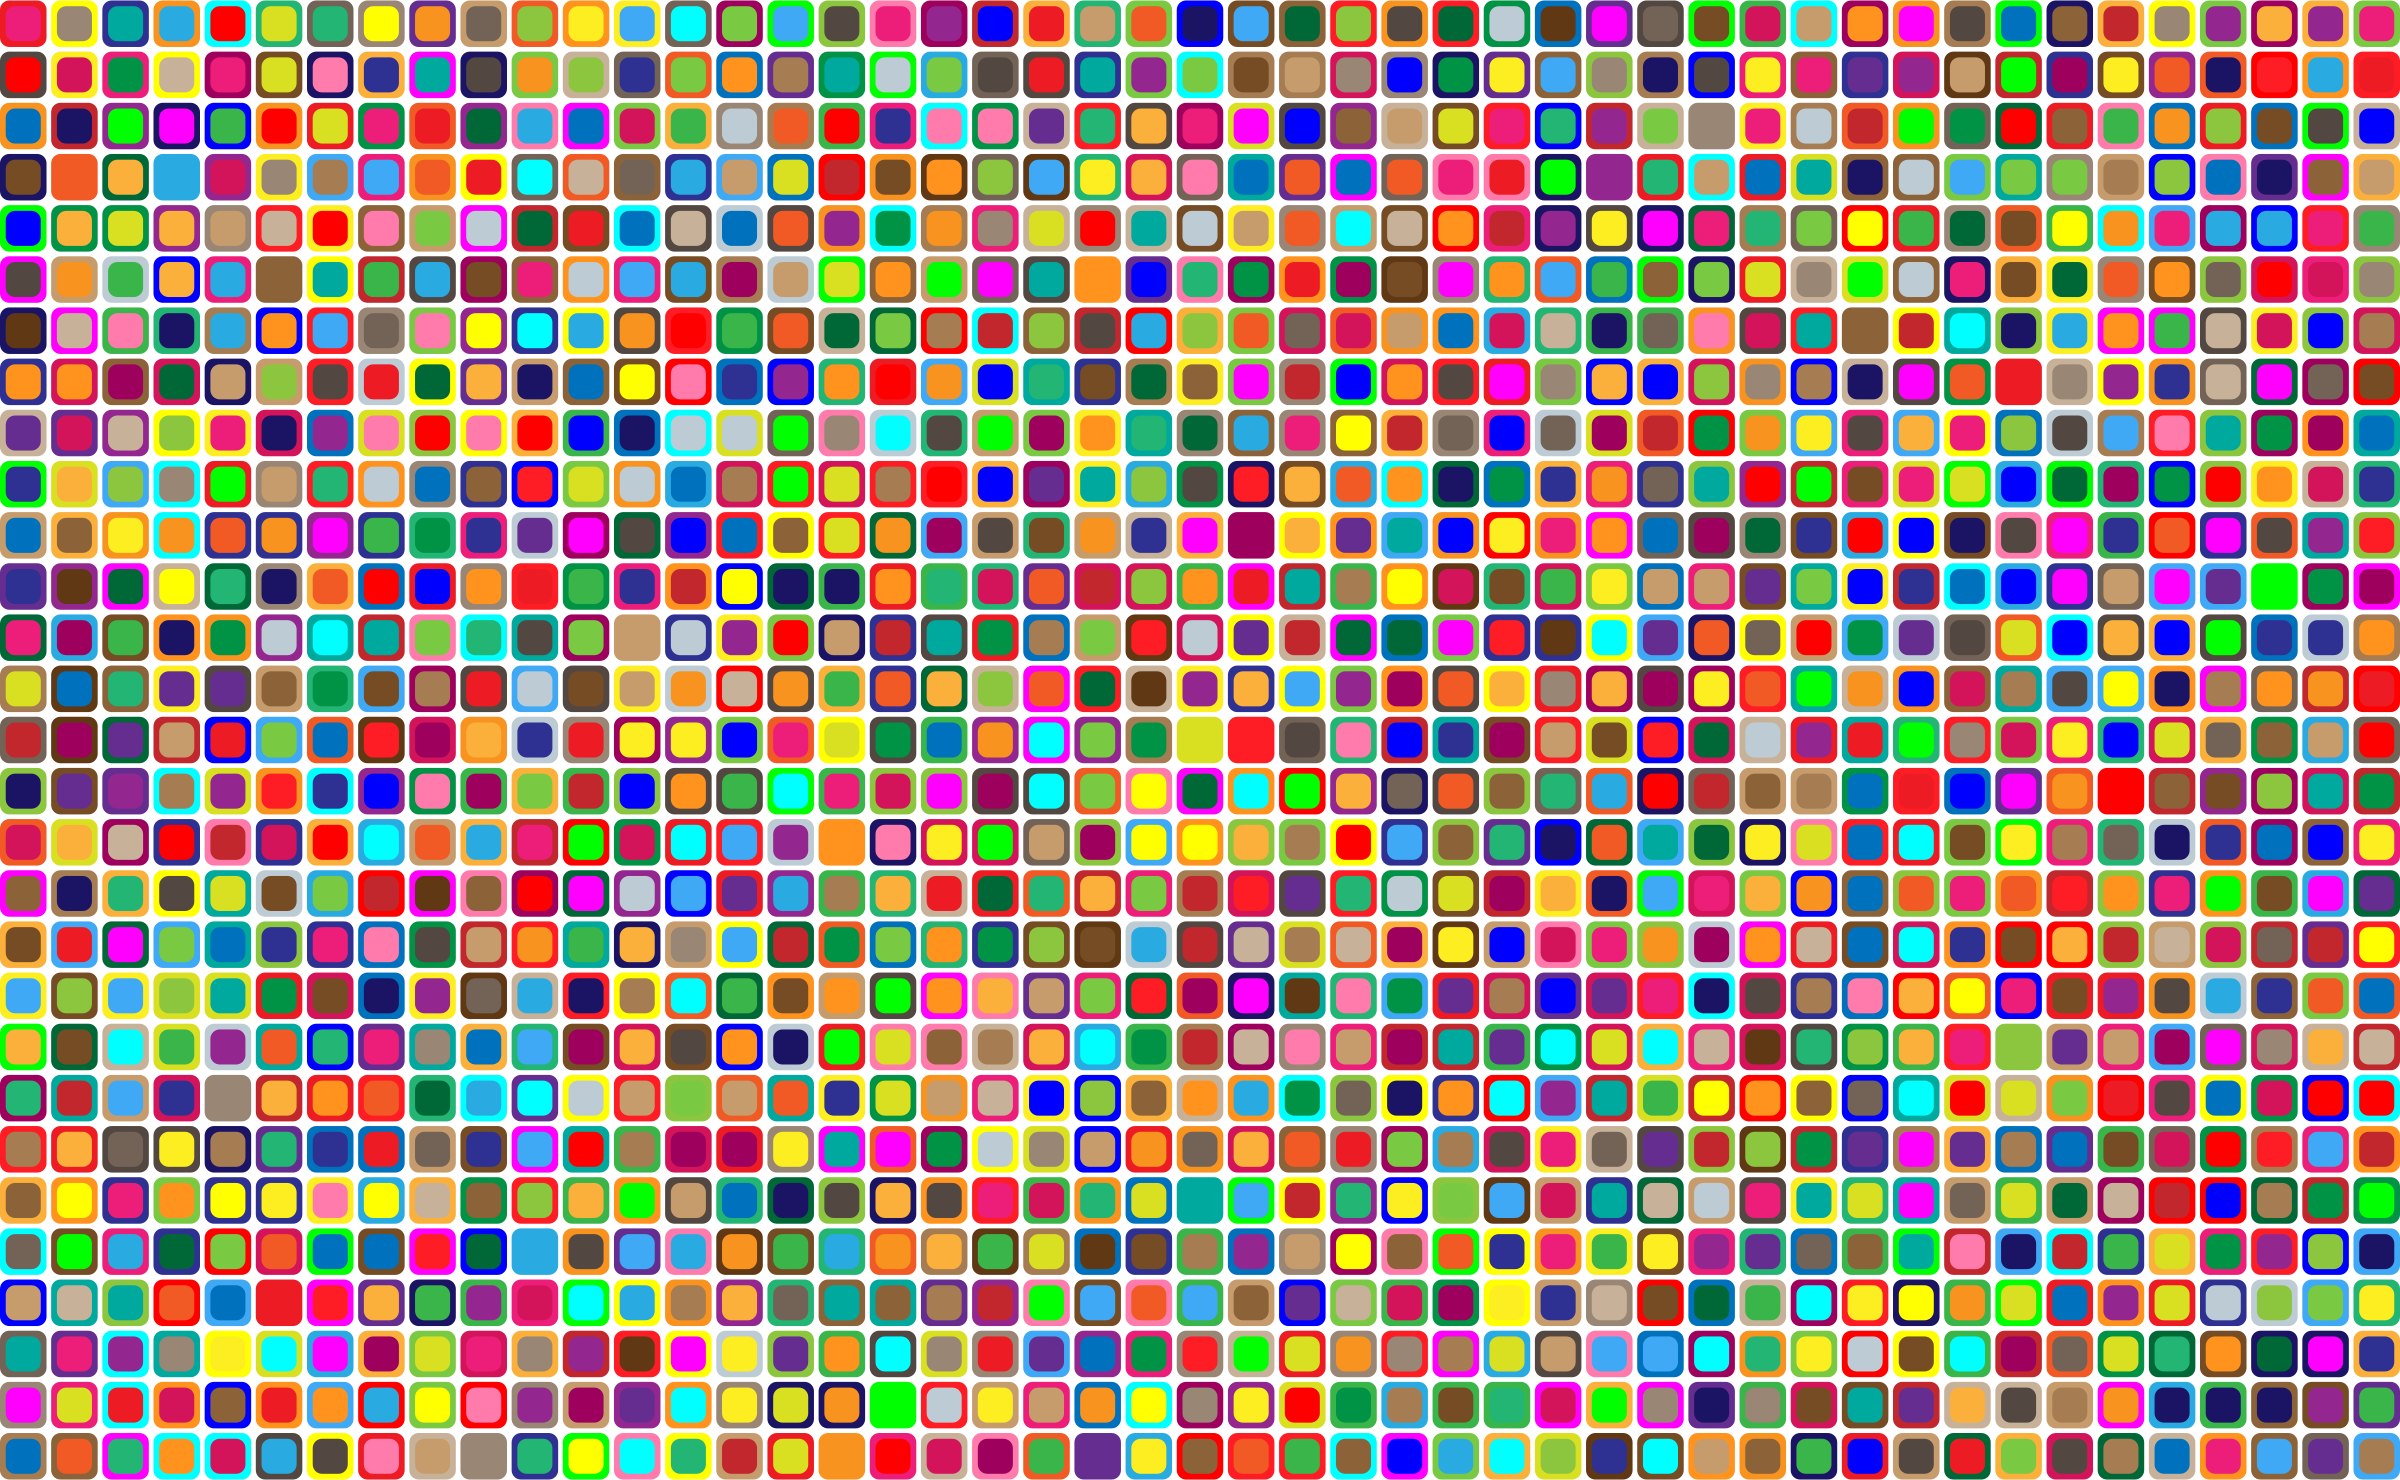 Colorful Squares Background by GDJ